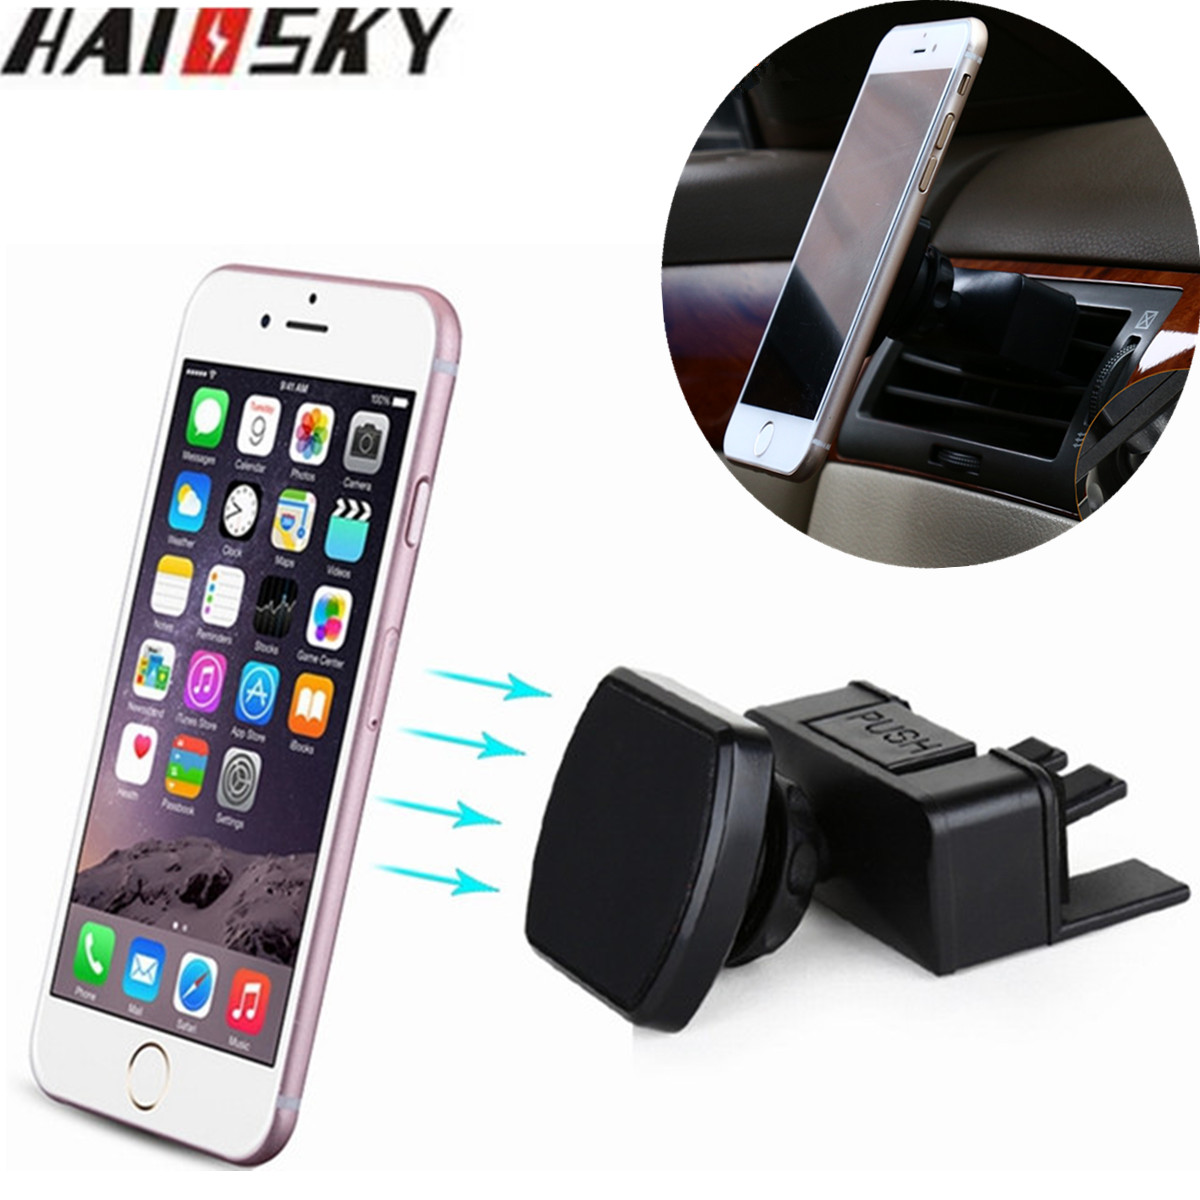 Aliexpress com buy universal car phone holder magnetic air vent cd slot car mount stands for iphone 7 plus 6 6s samsung huawei xiaomi mi5 redmi gps from